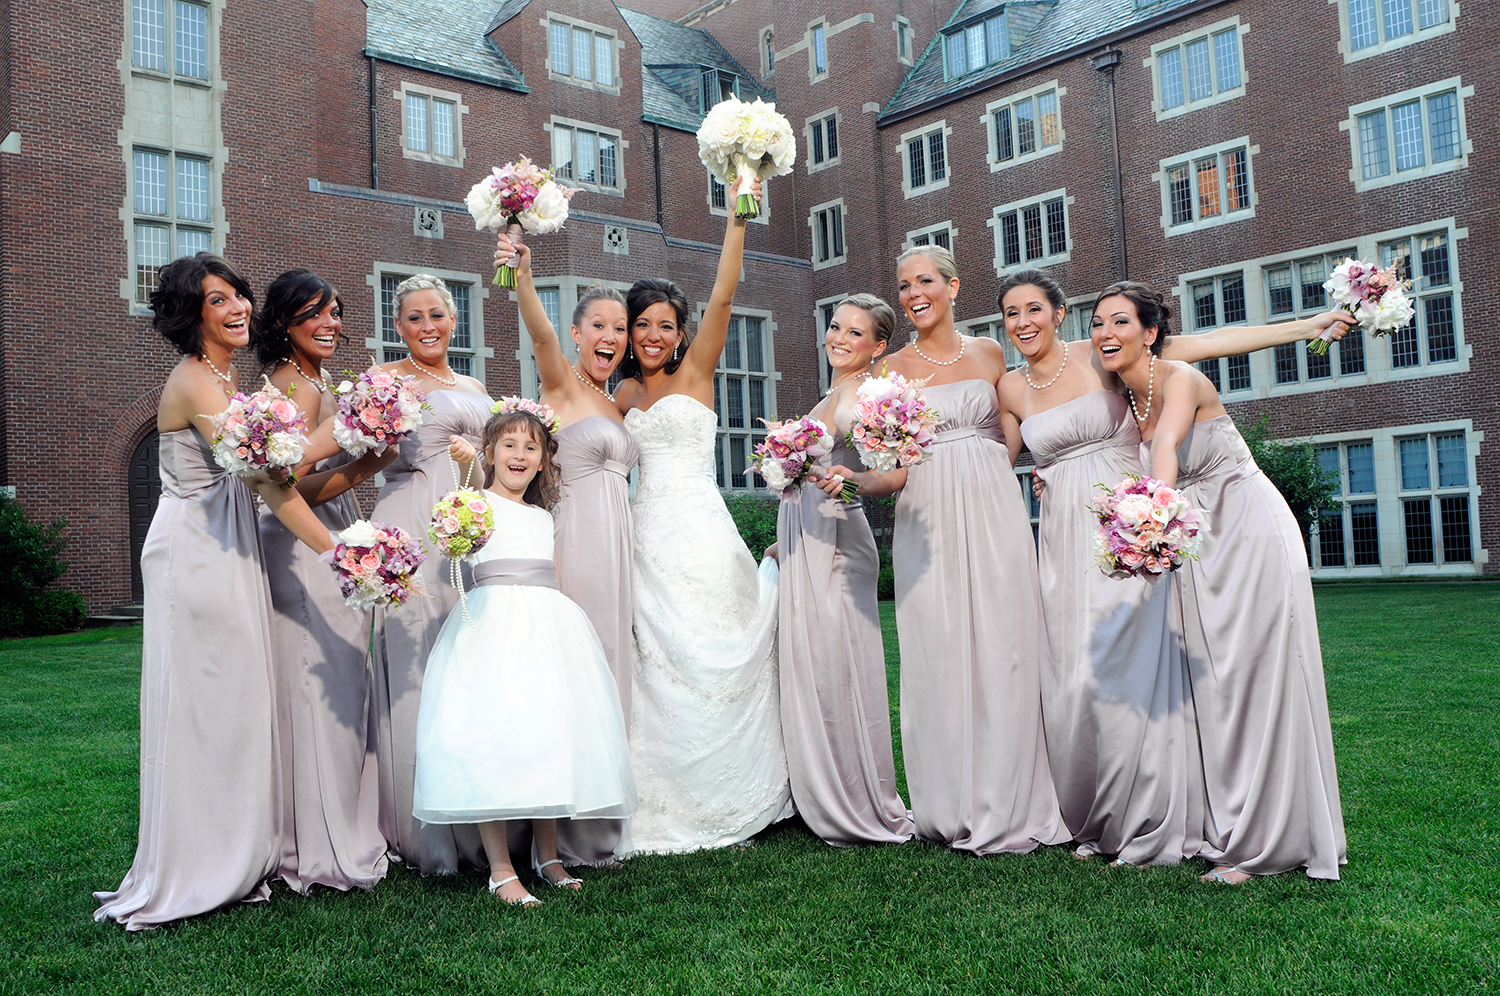 Wedding party poses for picture outside holding their bouquets in the air